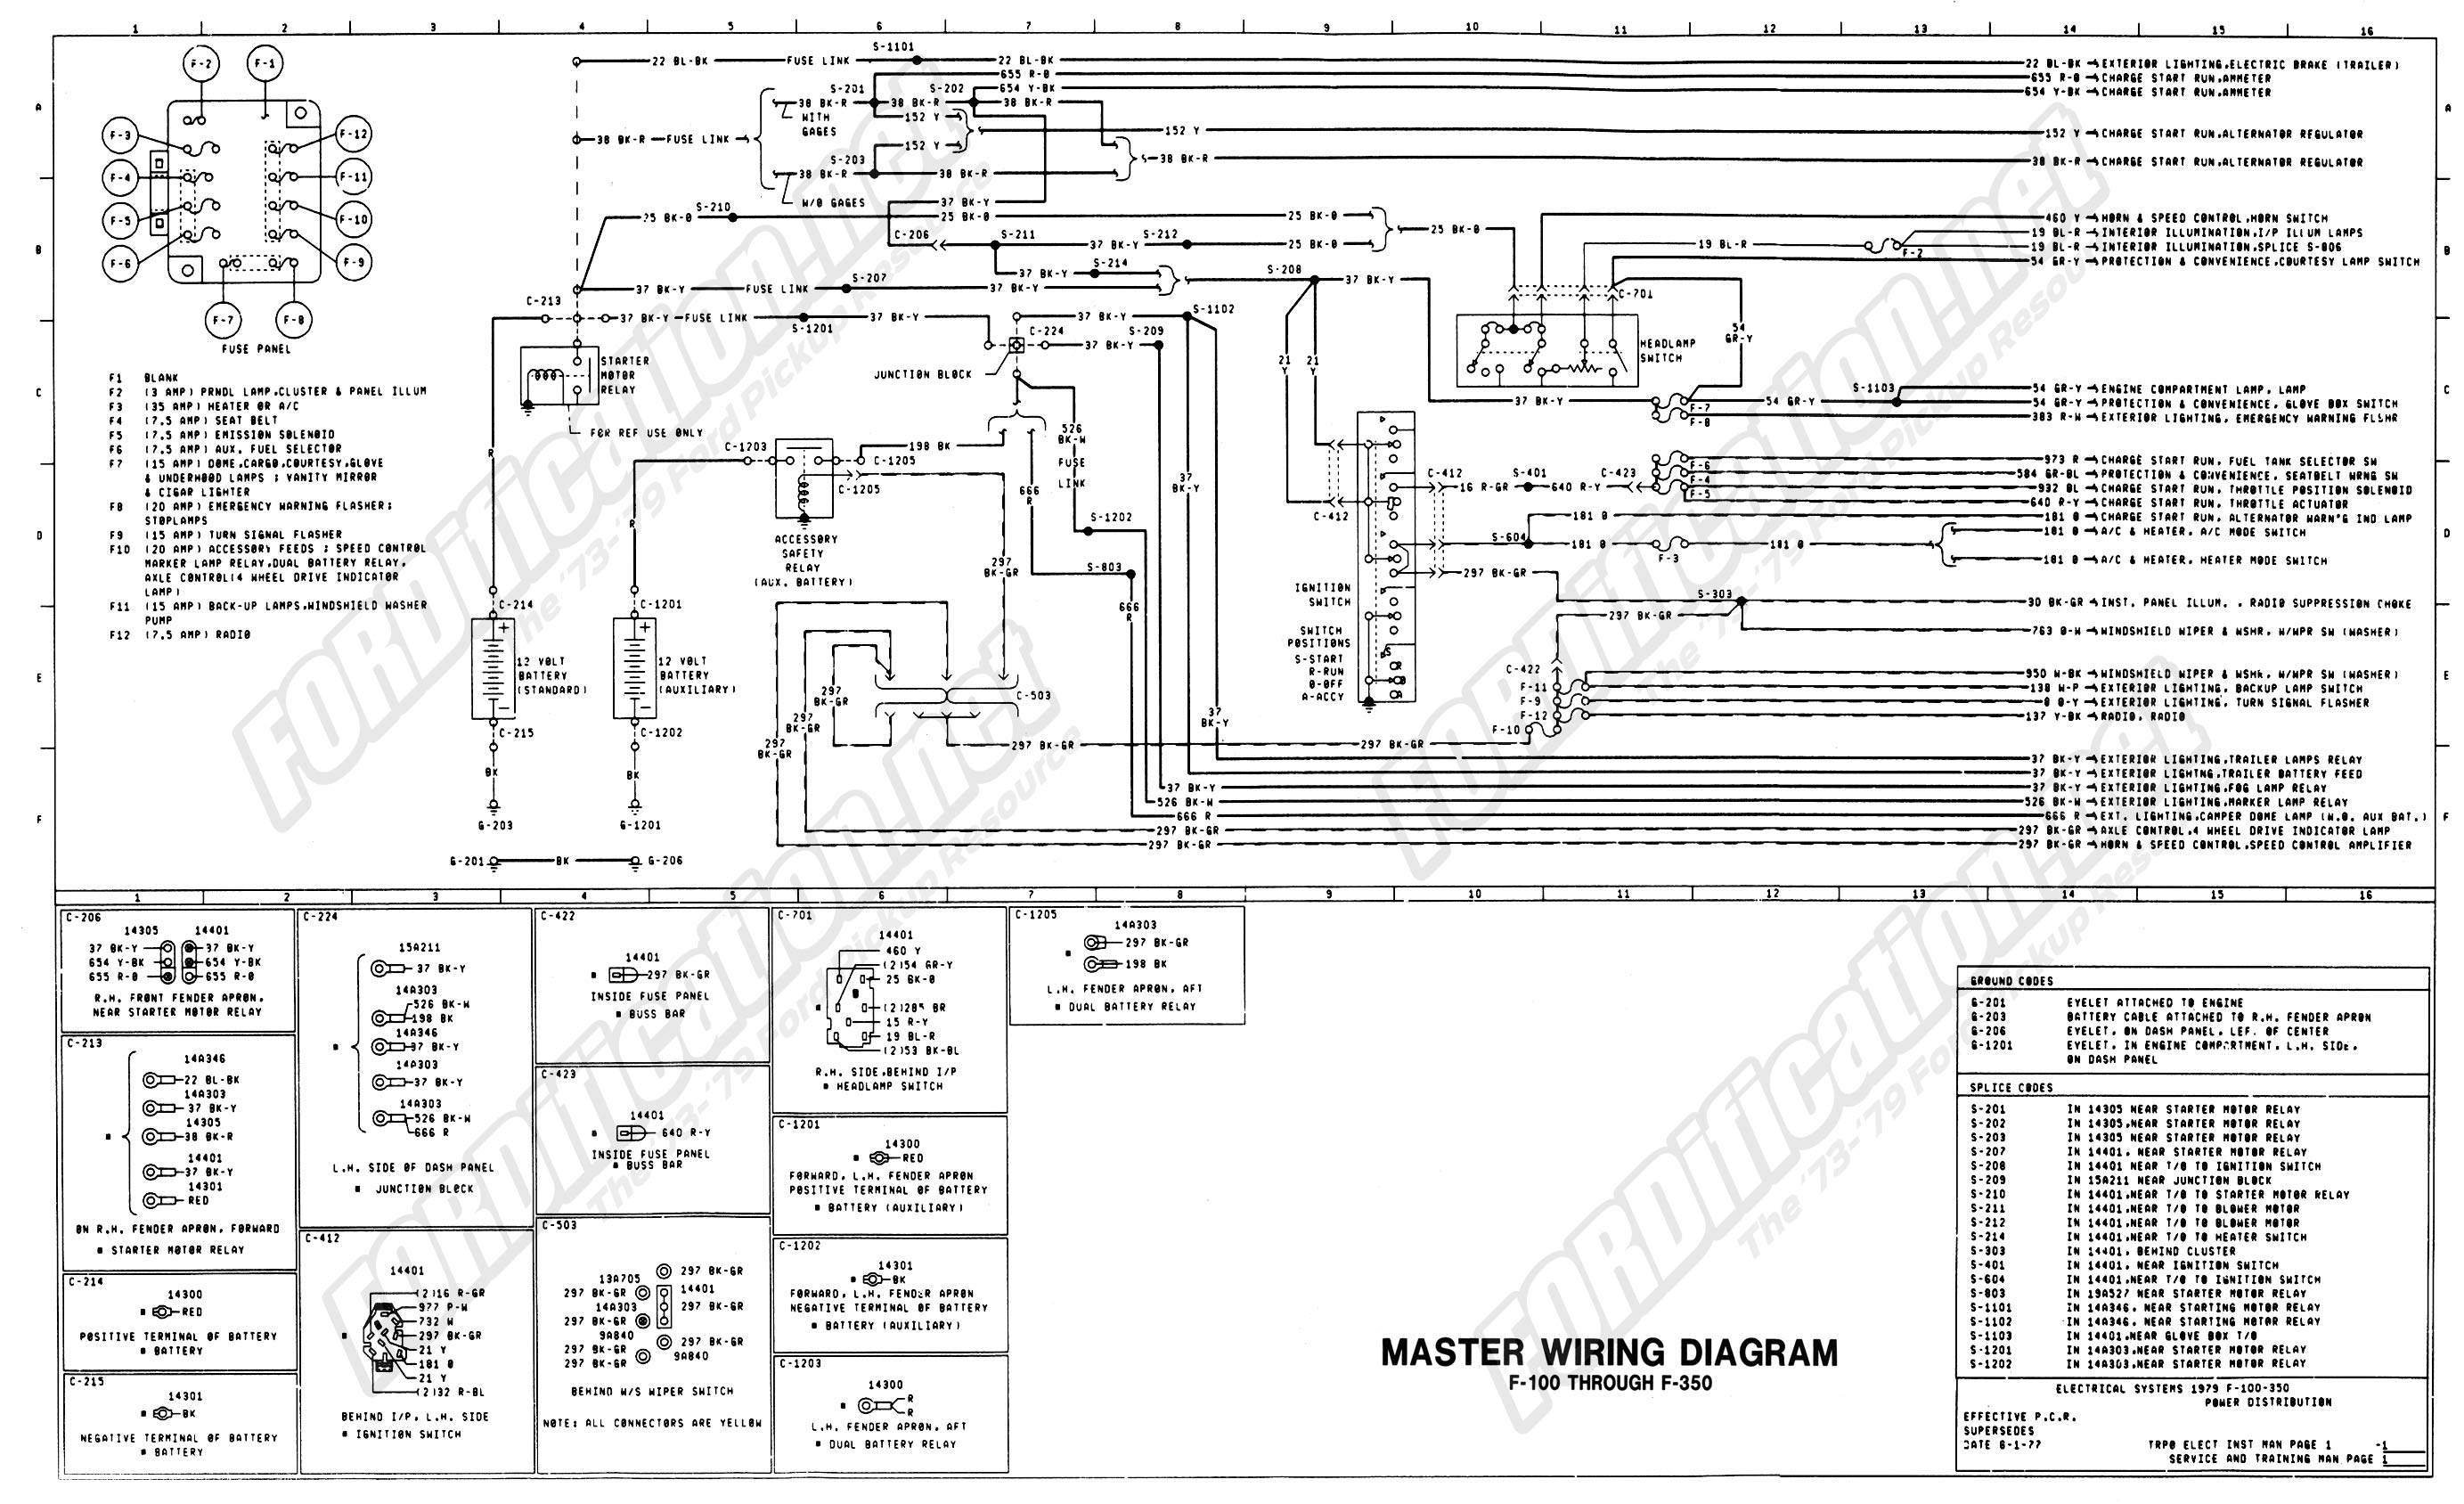 1986 f250 radio wiring diagram    1986    ford f150    radio       wiring       diagram    free    wiring       diagram        1986    ford f150    radio       wiring       diagram    free    wiring       diagram